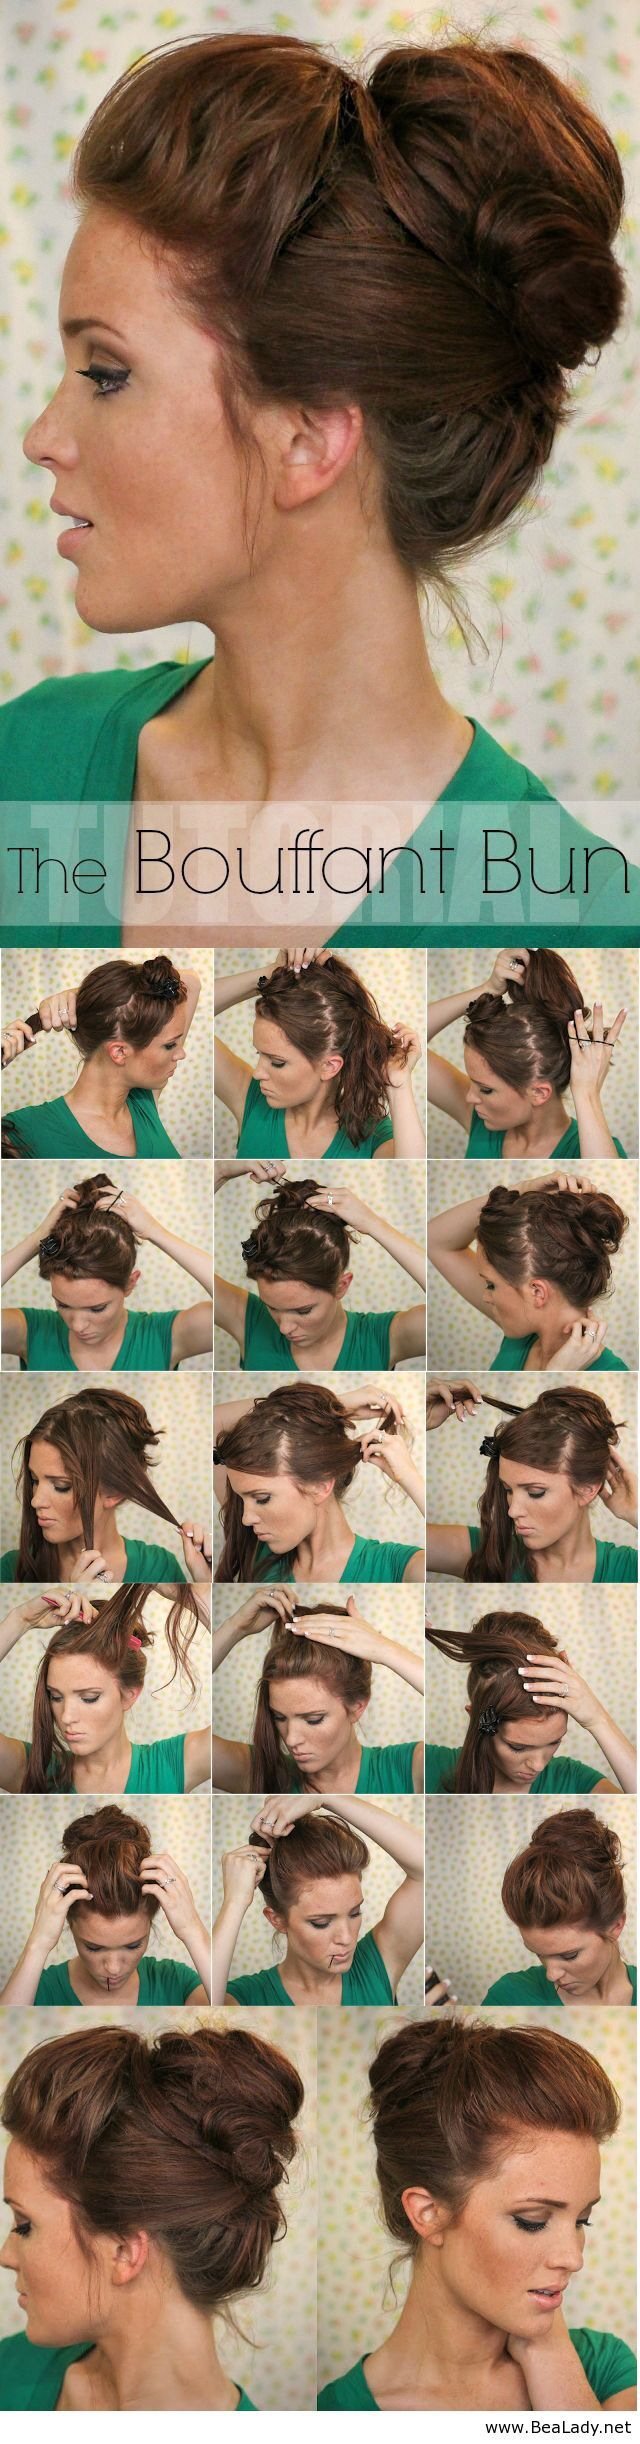 Bouffant bun hair styles and braids pinterest bouffant bun